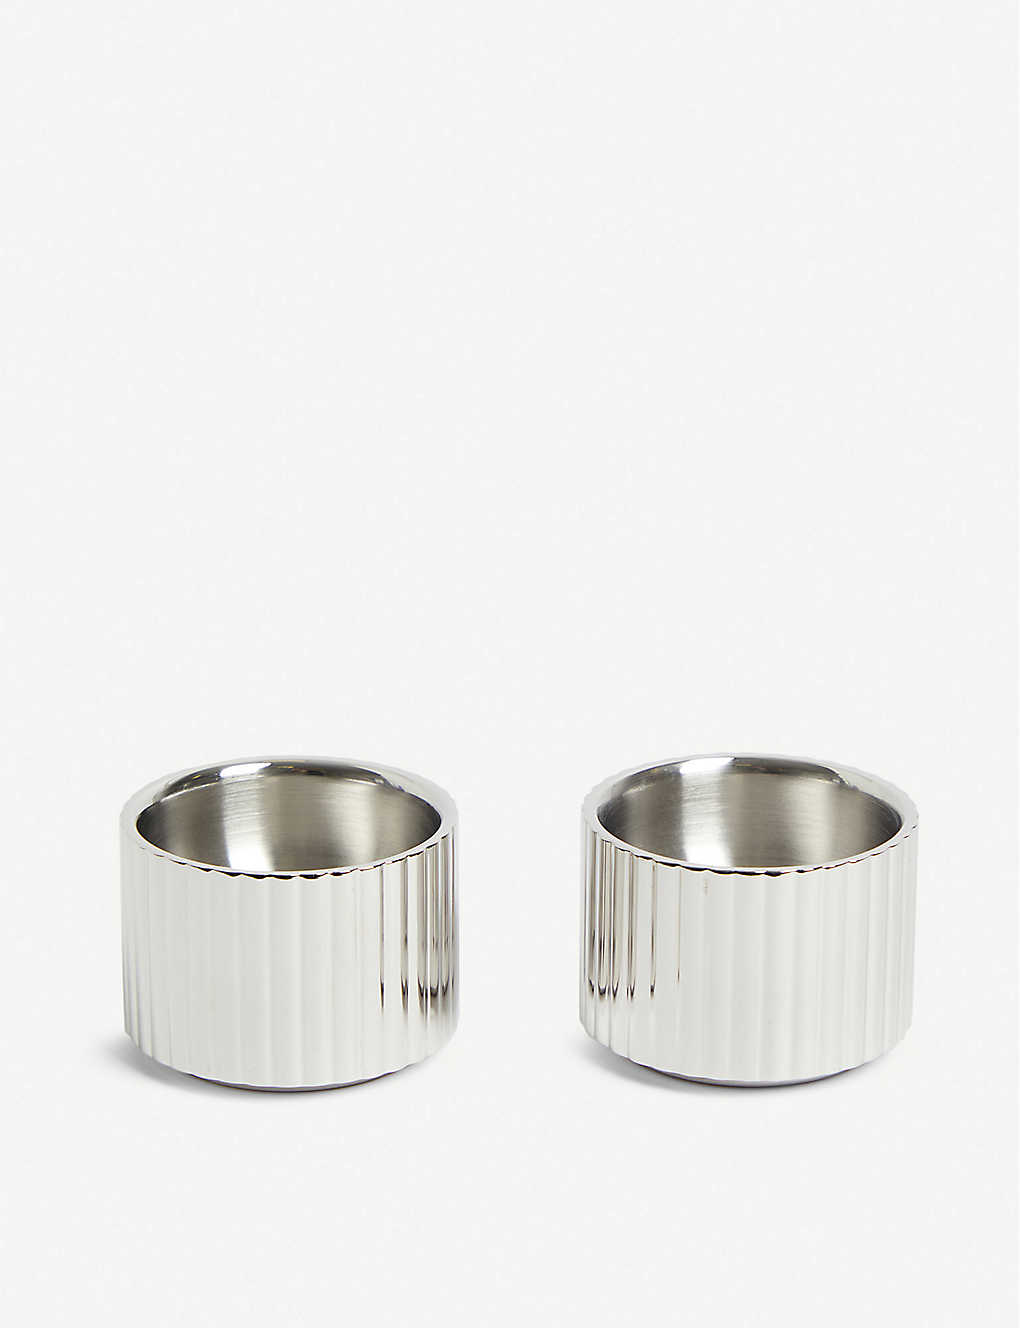 GEORG JENSEN: Bernadotte set of two stainless steel egg cups 3.3cm